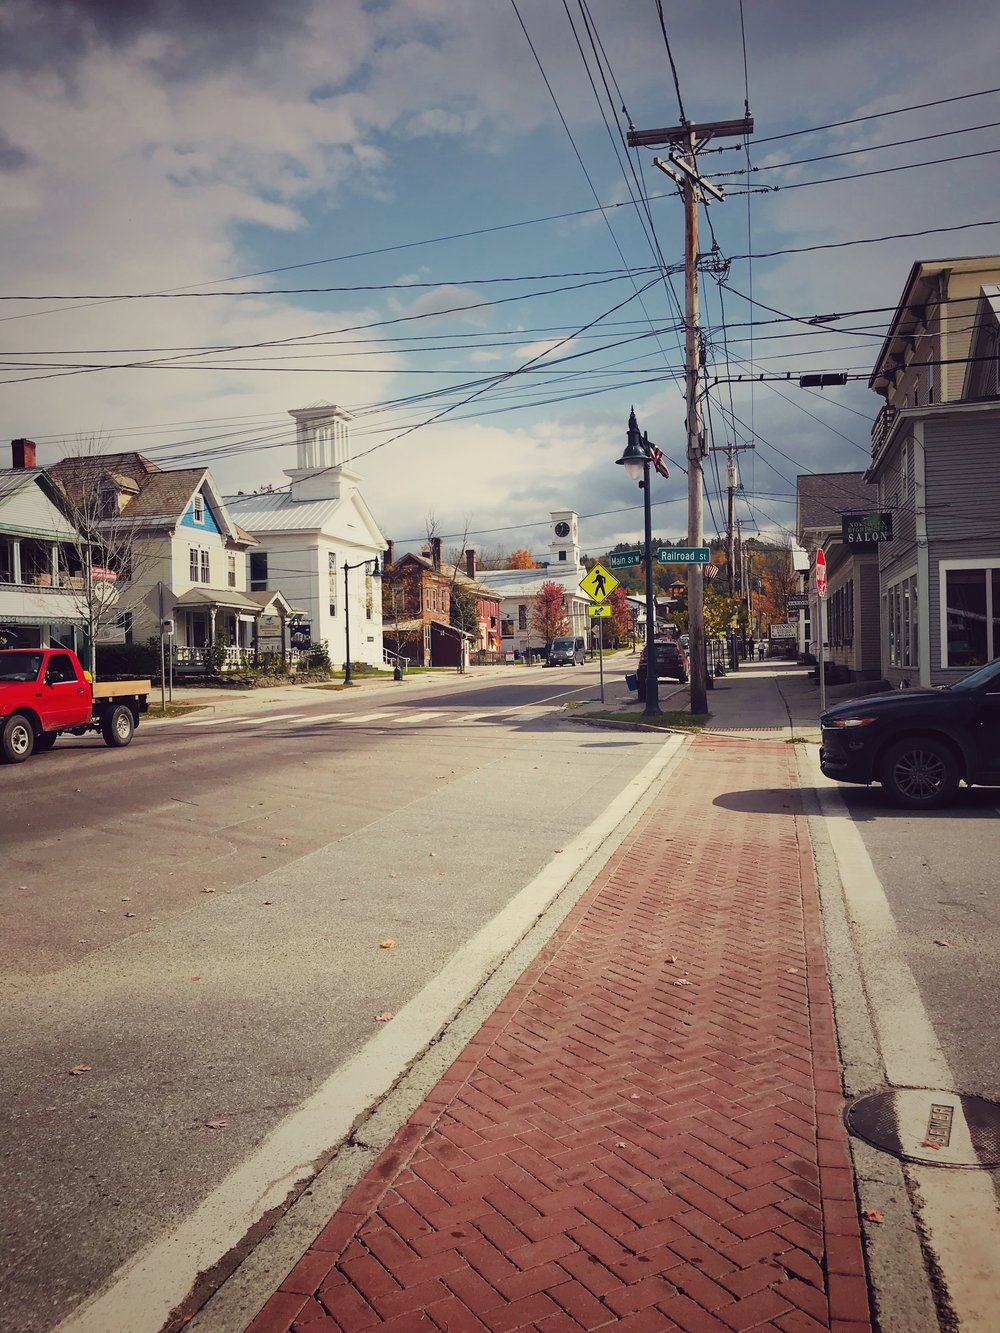 Johnson is a quintessentially cute little New England town.